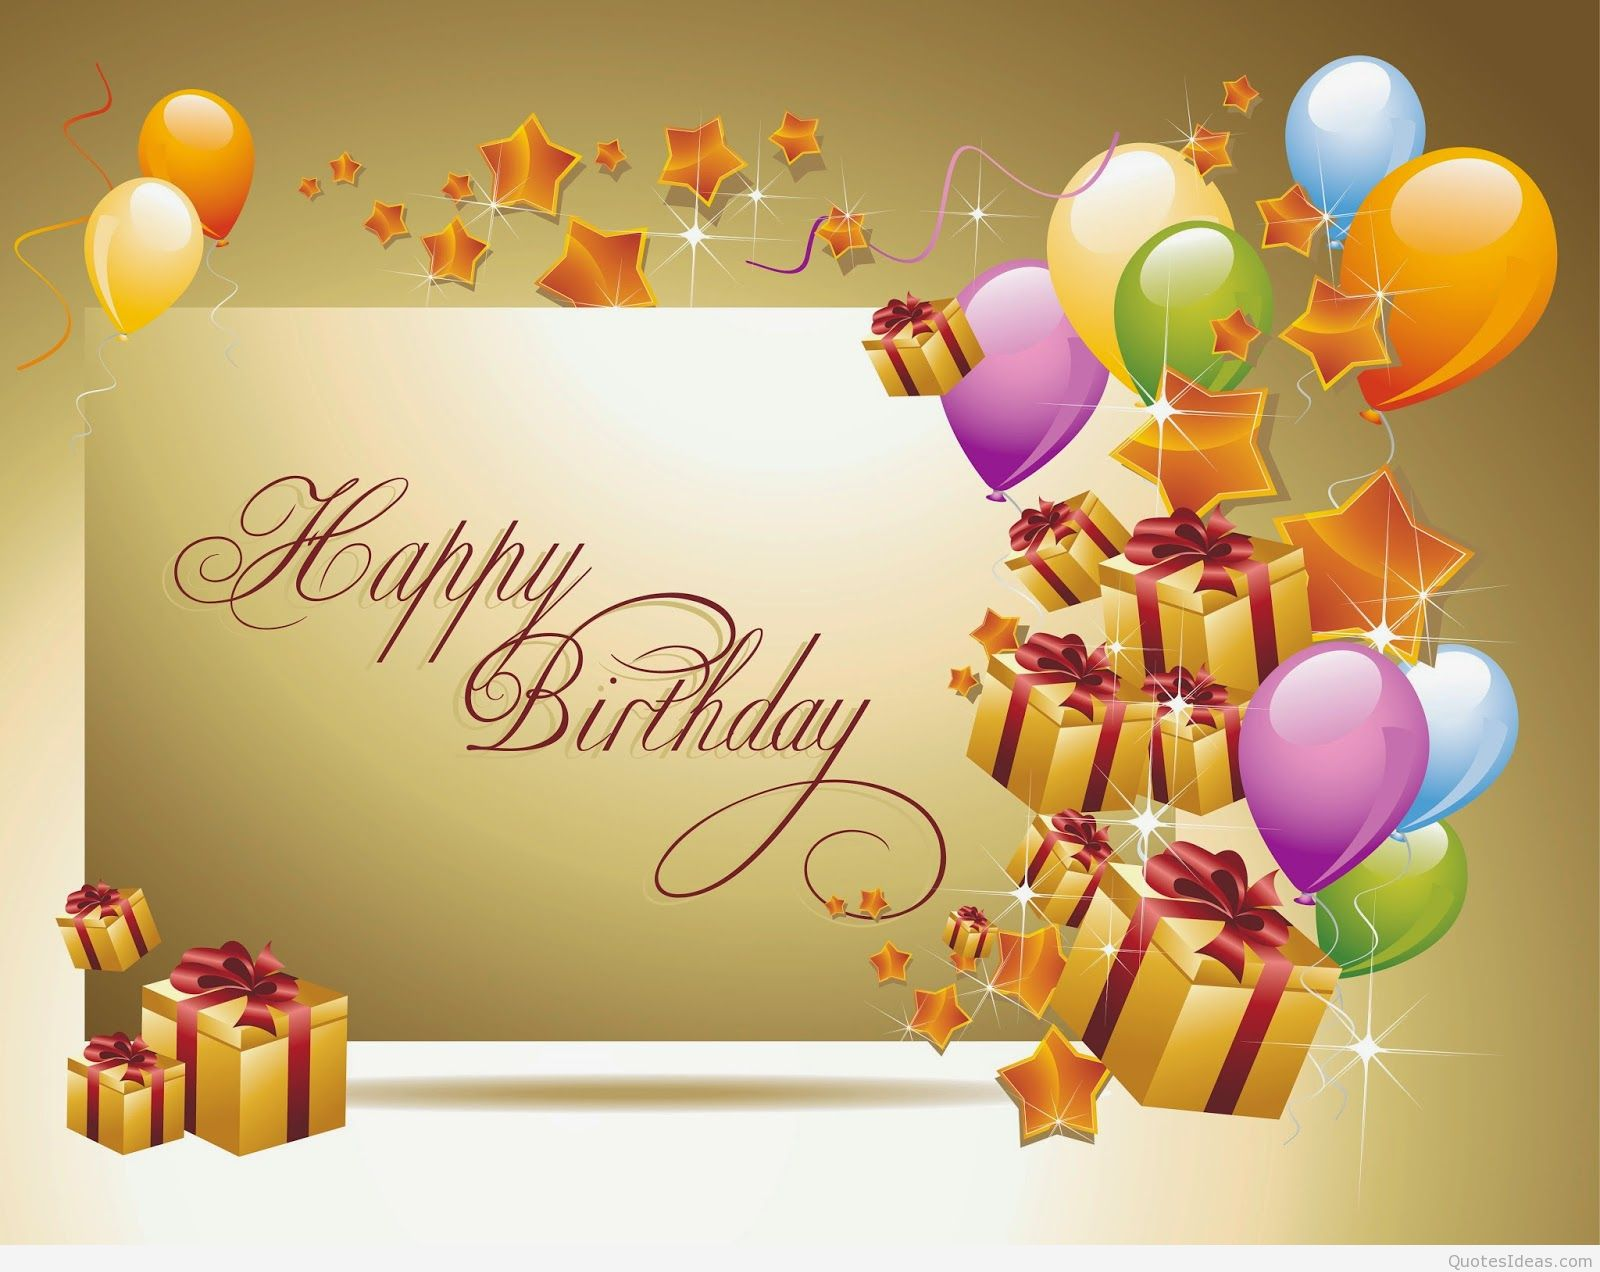 happy birthday wallpaper with wishes ; Happy-birthday-gift-wallpaper